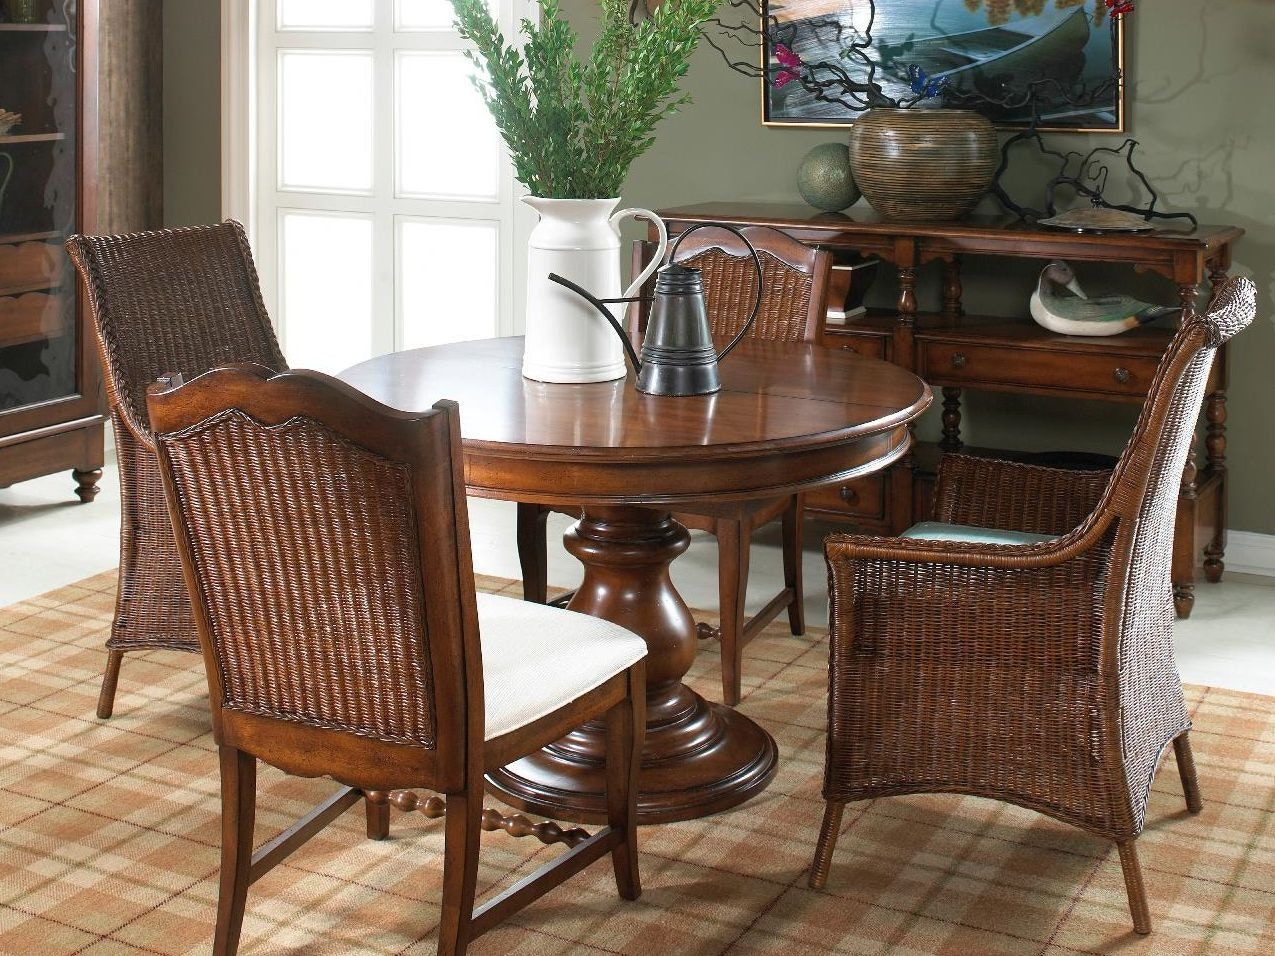 Fine Furniture Design Round Dining Table 1050 810/811